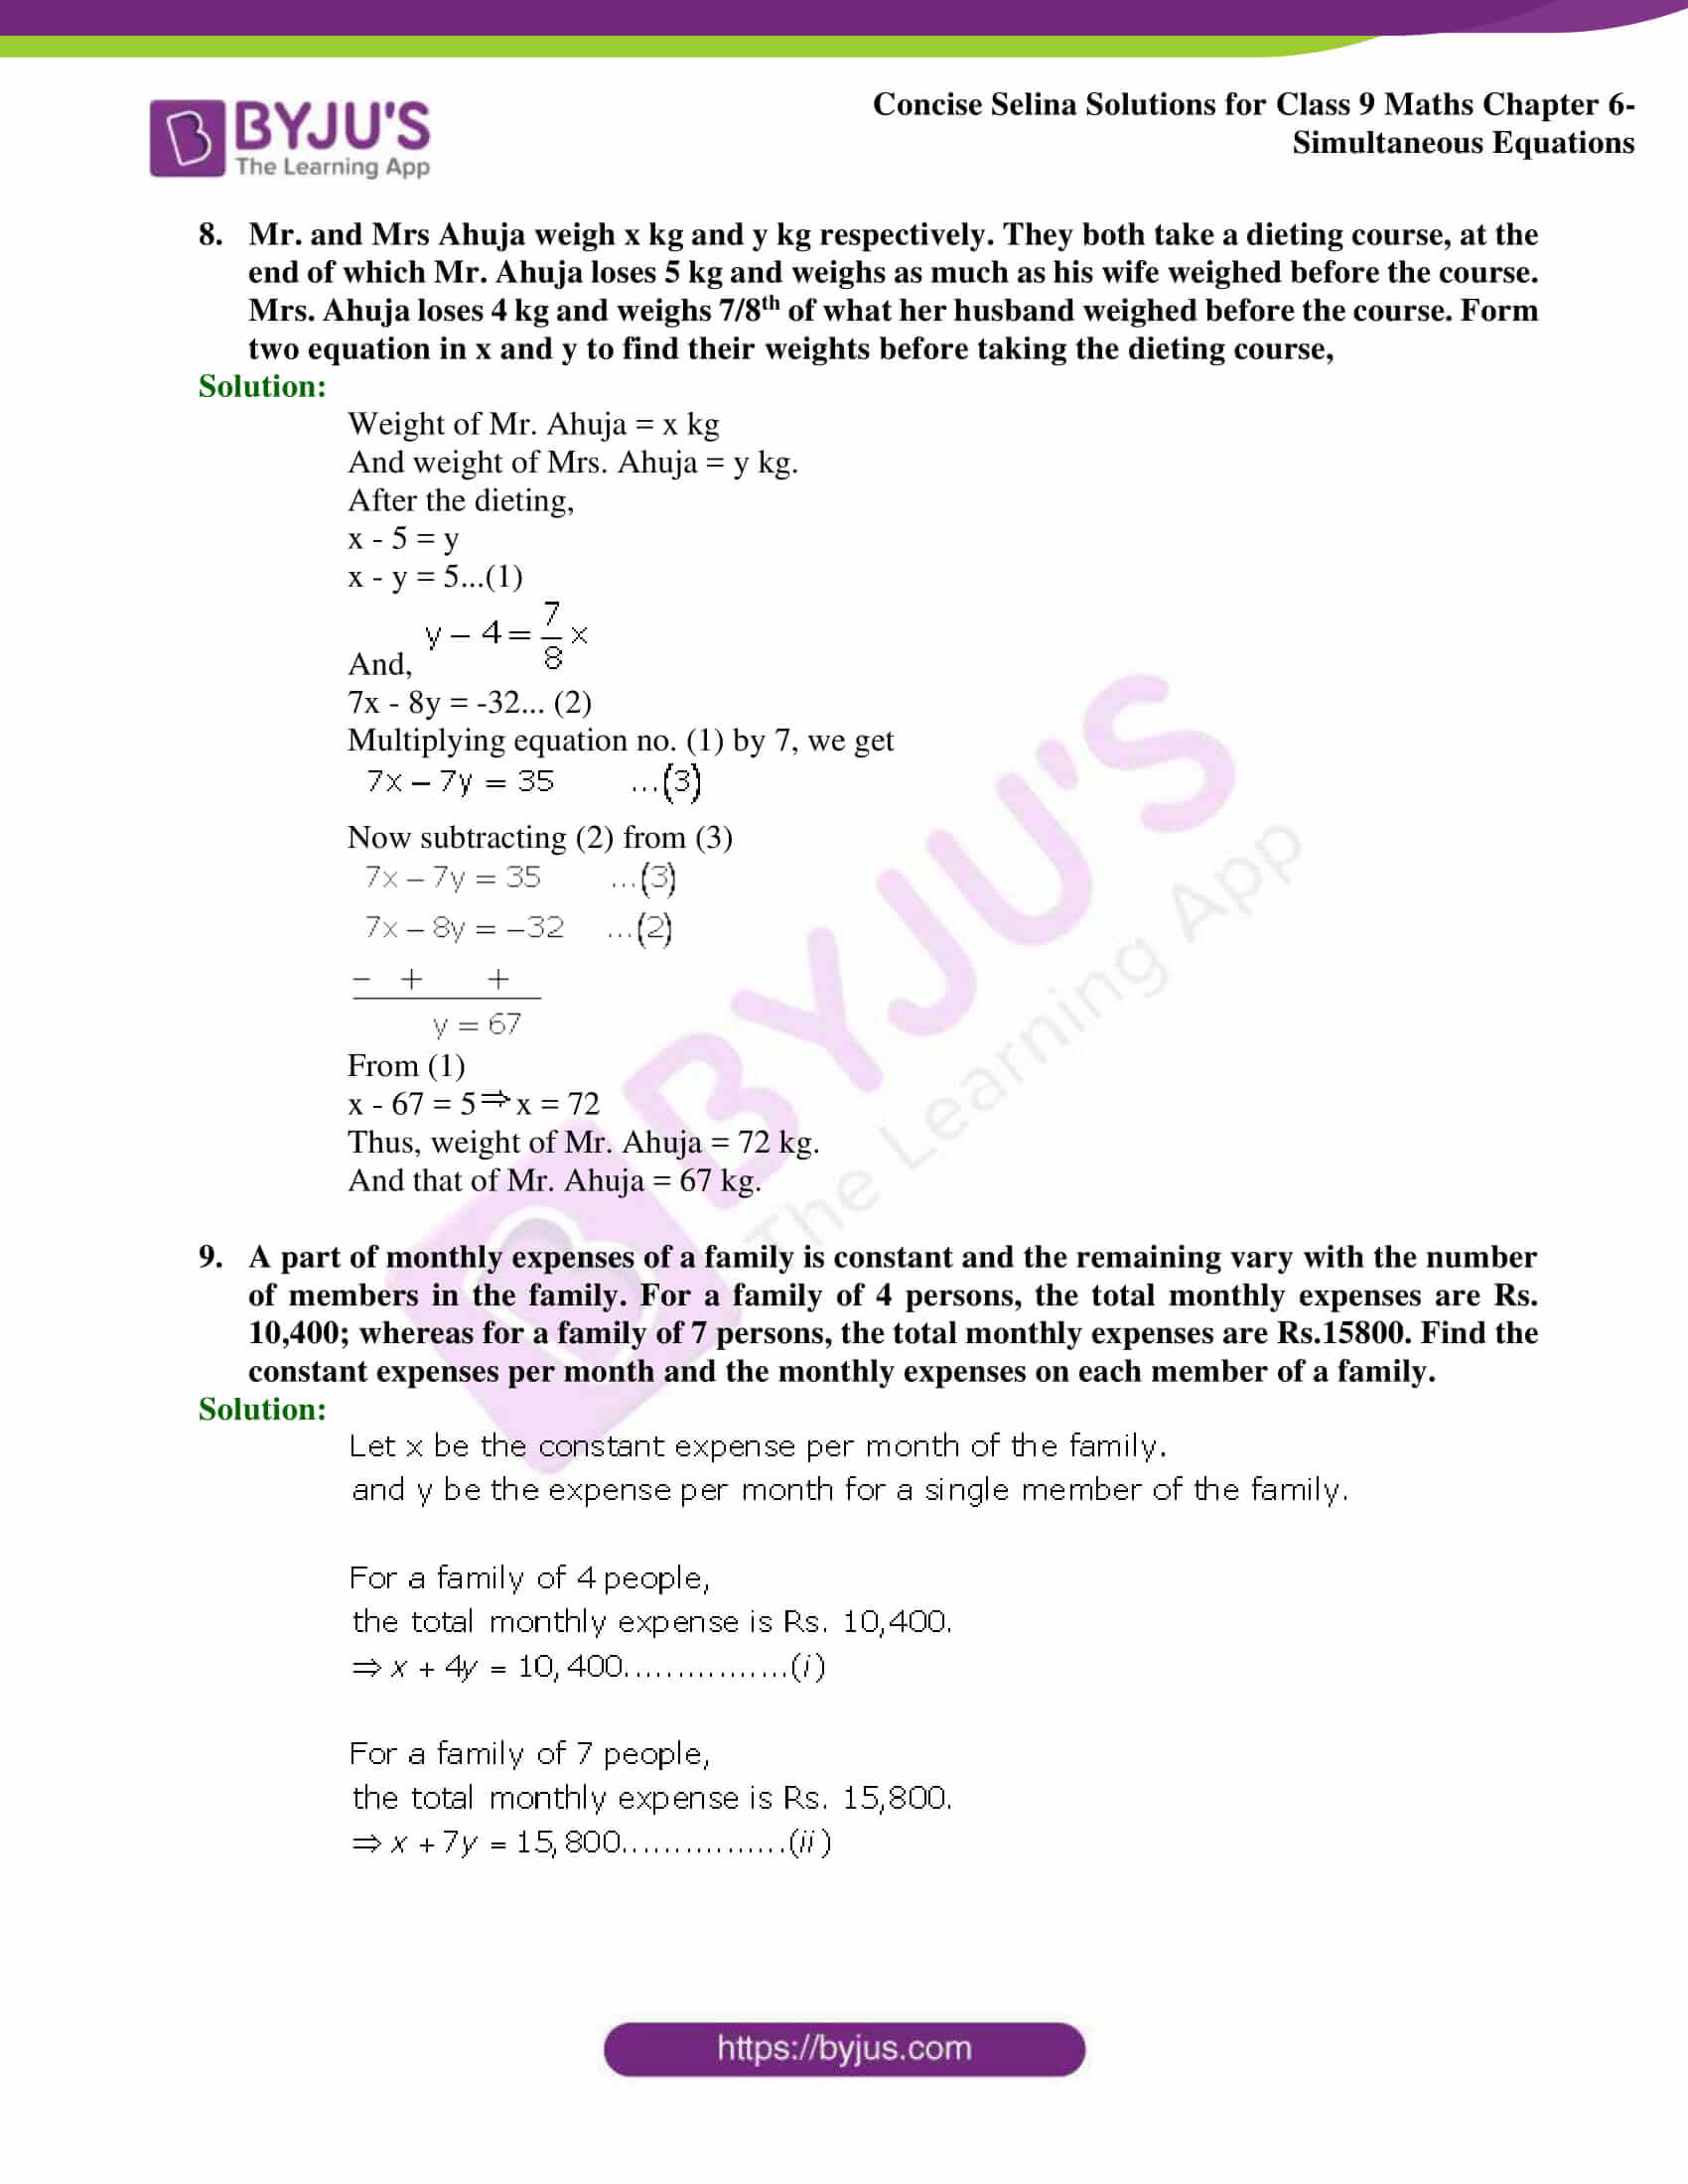 Selina Solutions Class 9 Maths Chapter 6 Simultaneous Equations part 57